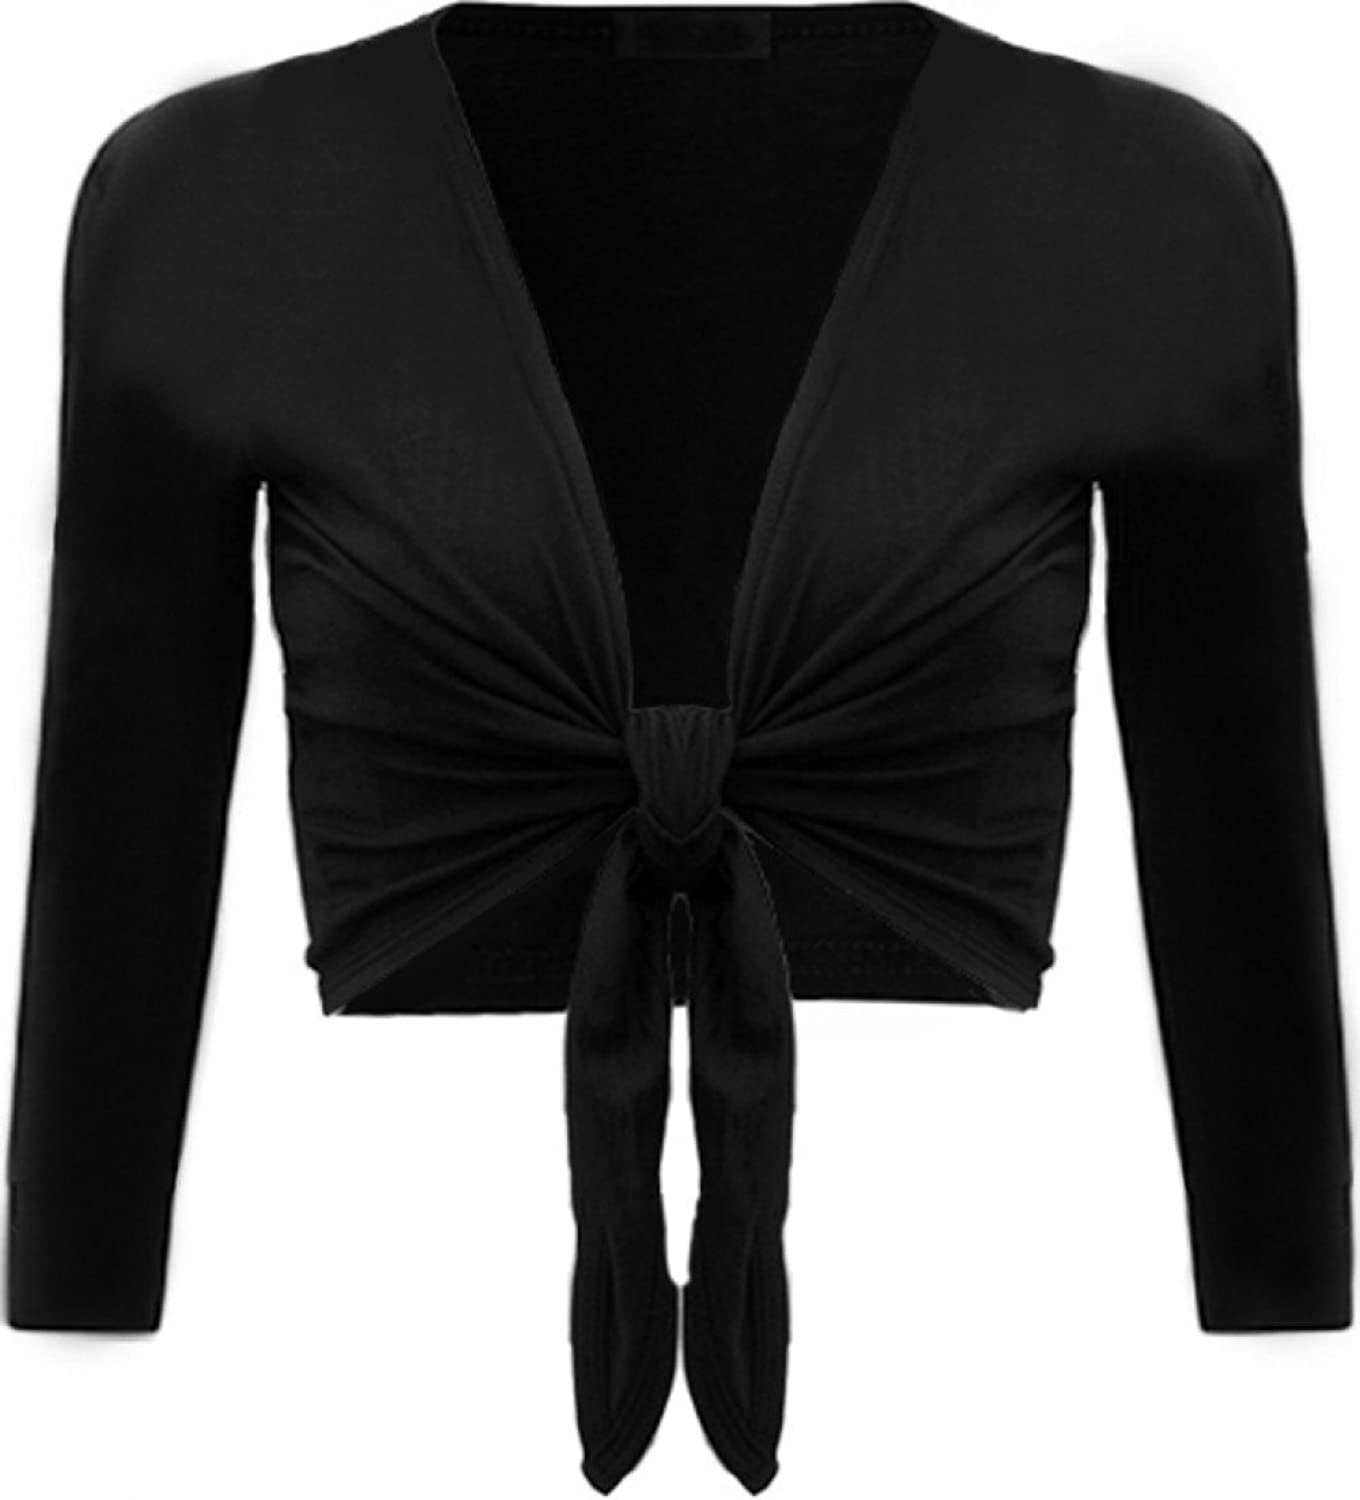 Chocolate Pickle Womens Tie up Long Sleeve Bolero Shrug Club Wear ...